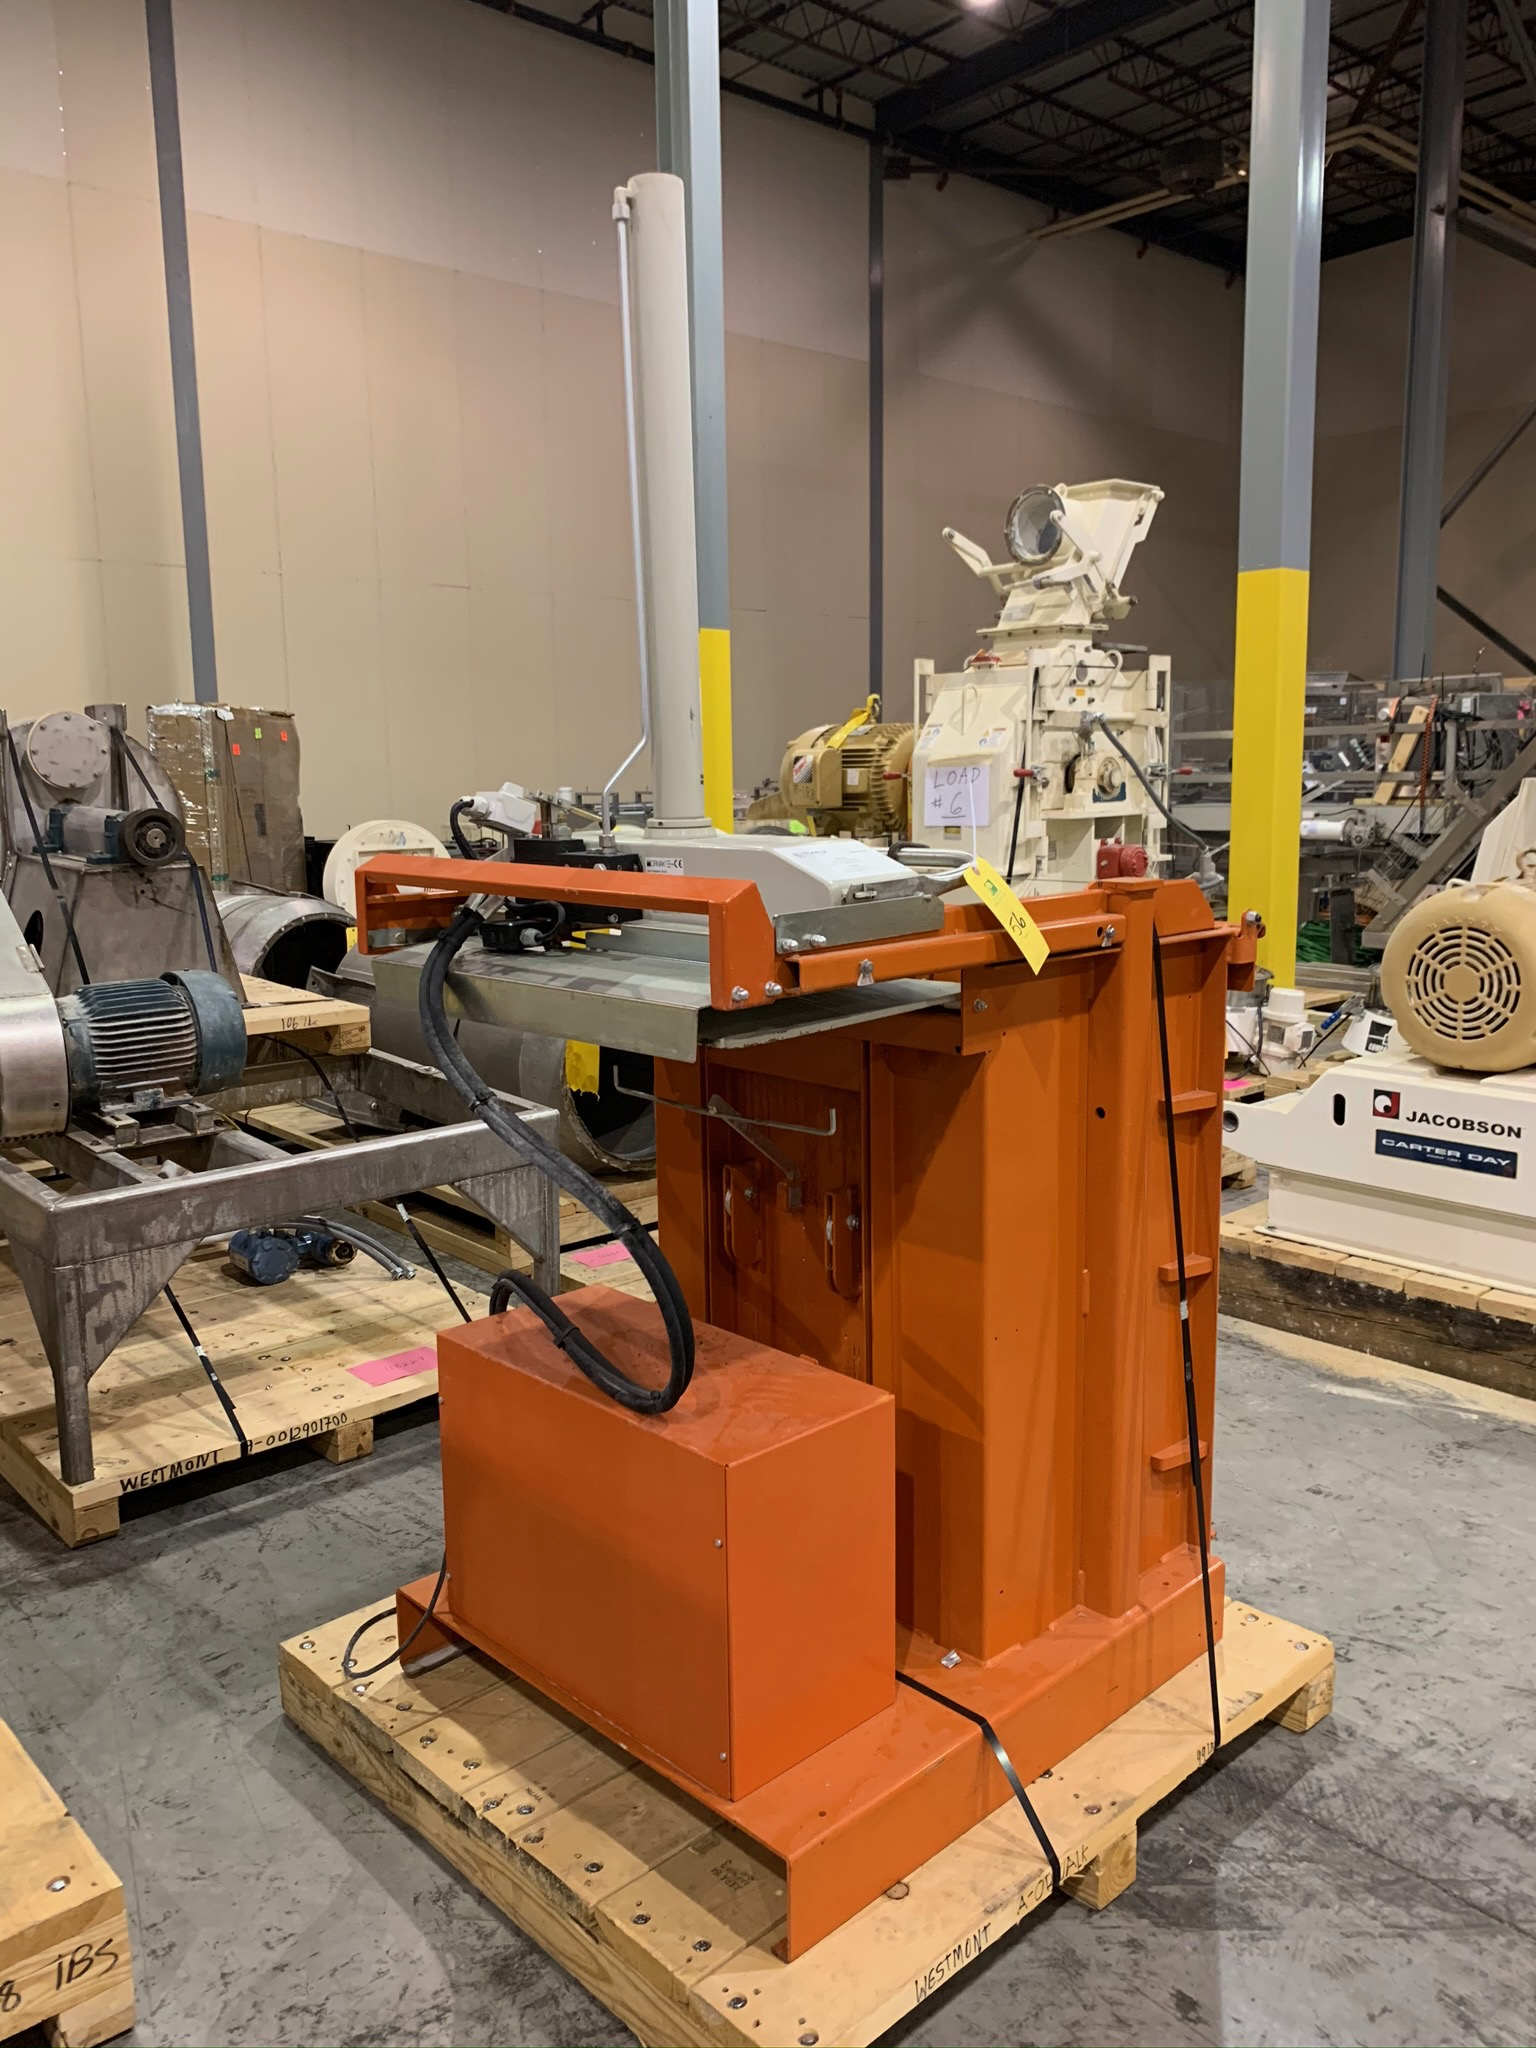 Orwak Compactor Model Compactor 5010 E S/N 103771 (Rigging Fee - $50) - Image 4 of 4